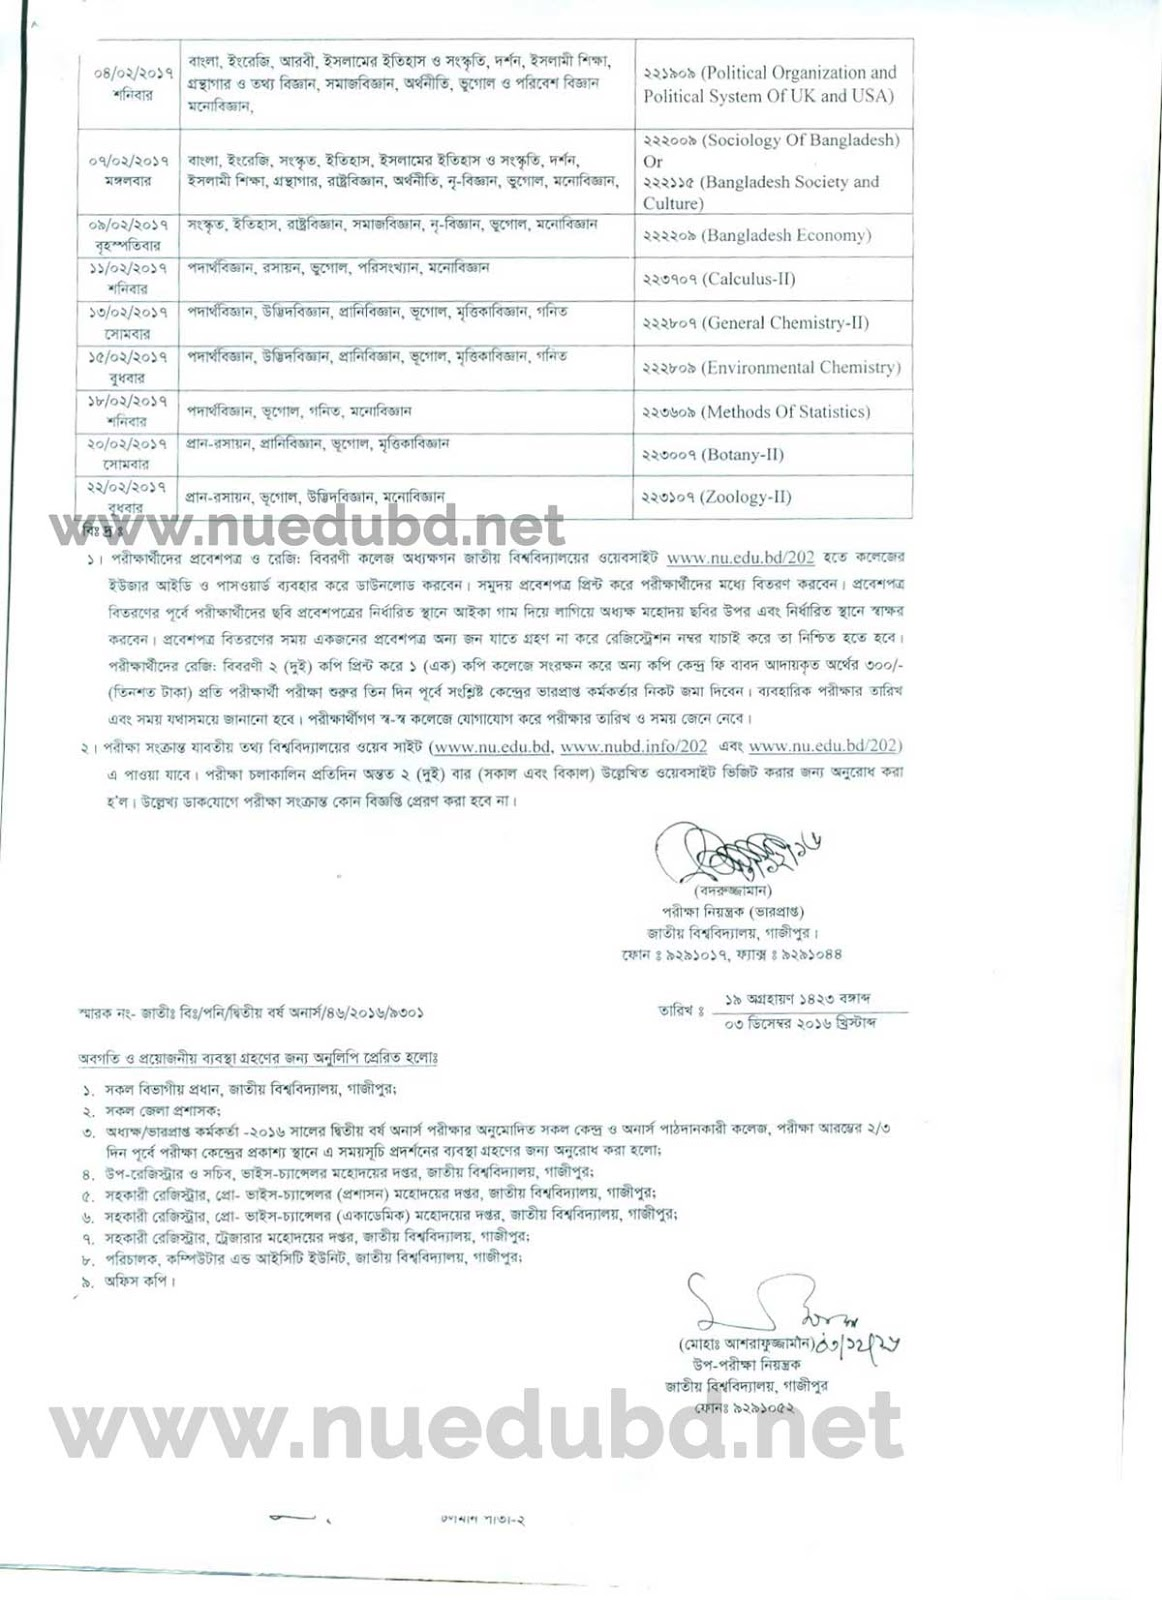 NU Honours 2nd Year Routine 2016 [Session 2014-15]